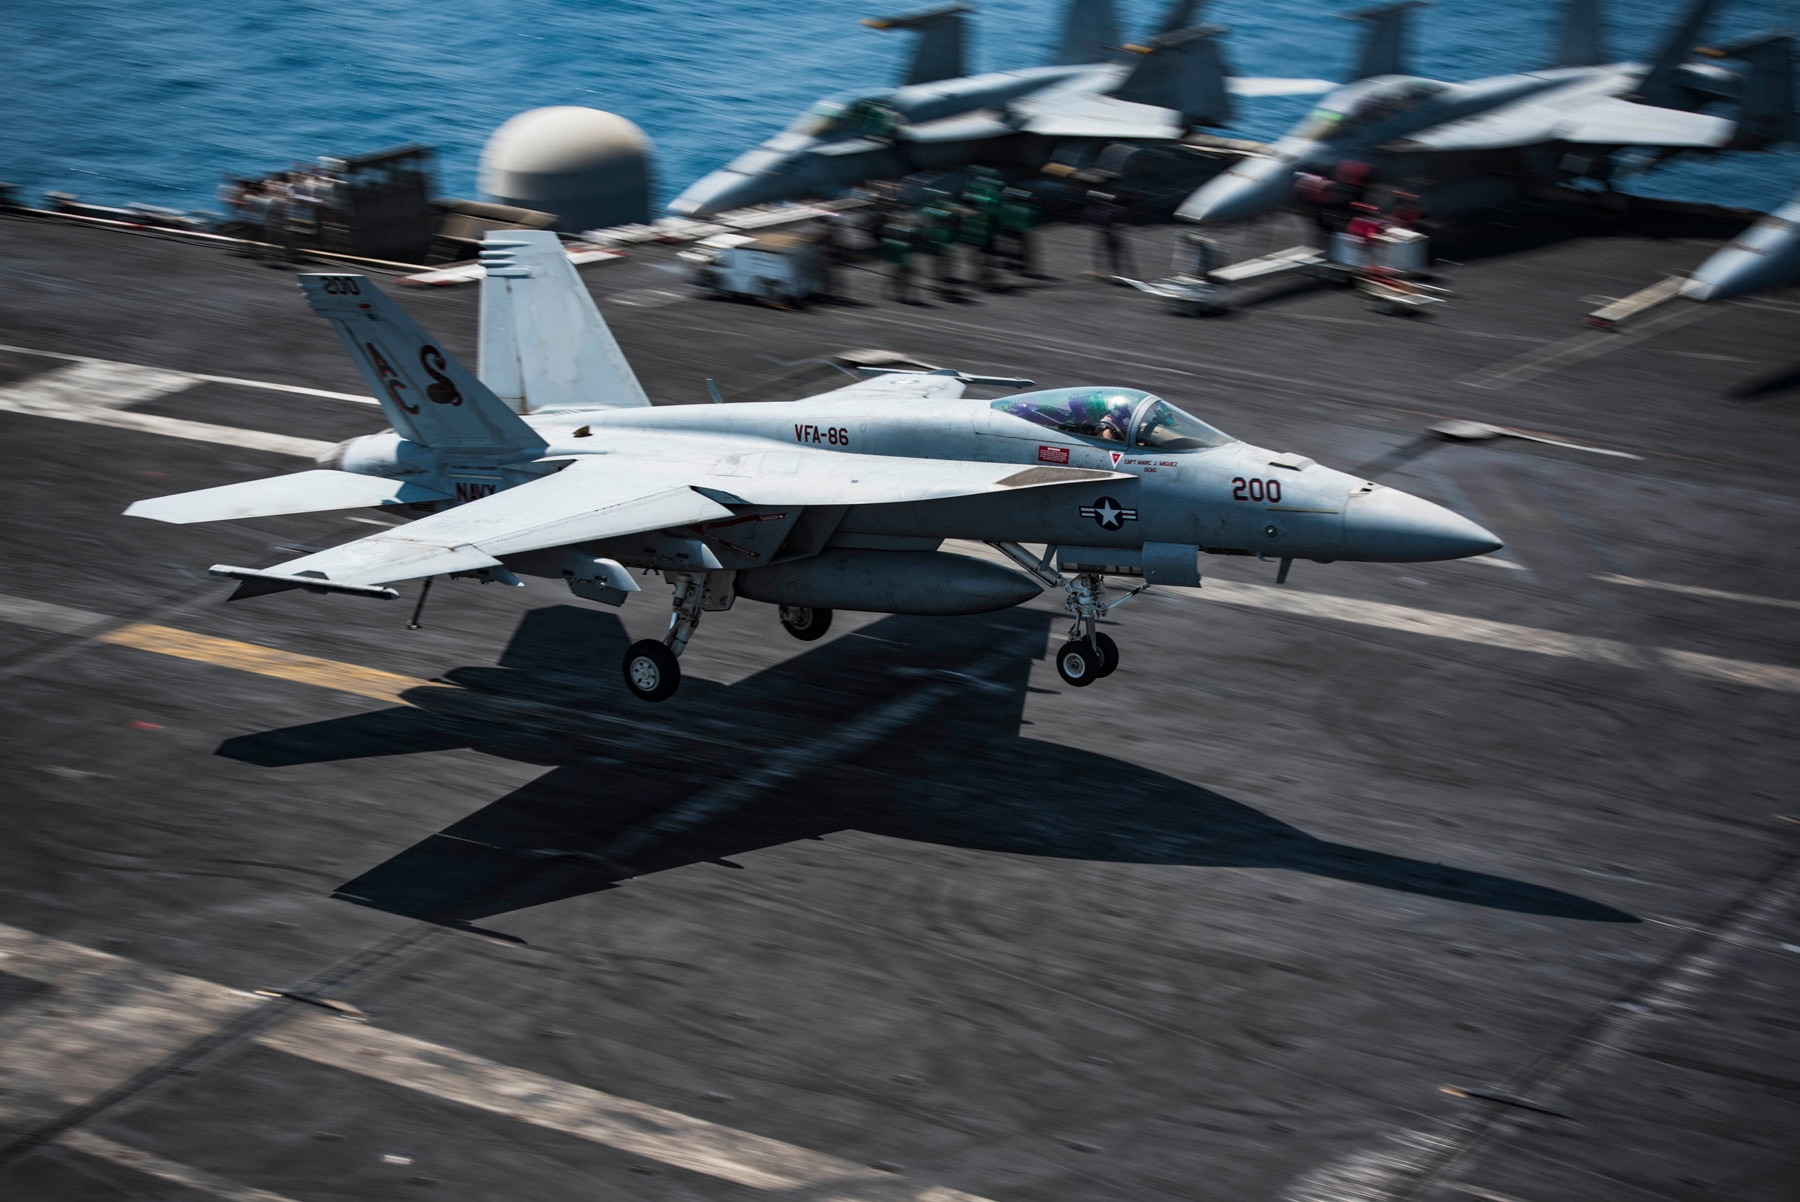 Navy F/A-18E Super Hornet shoots down Syrian jet after it attacks US allies